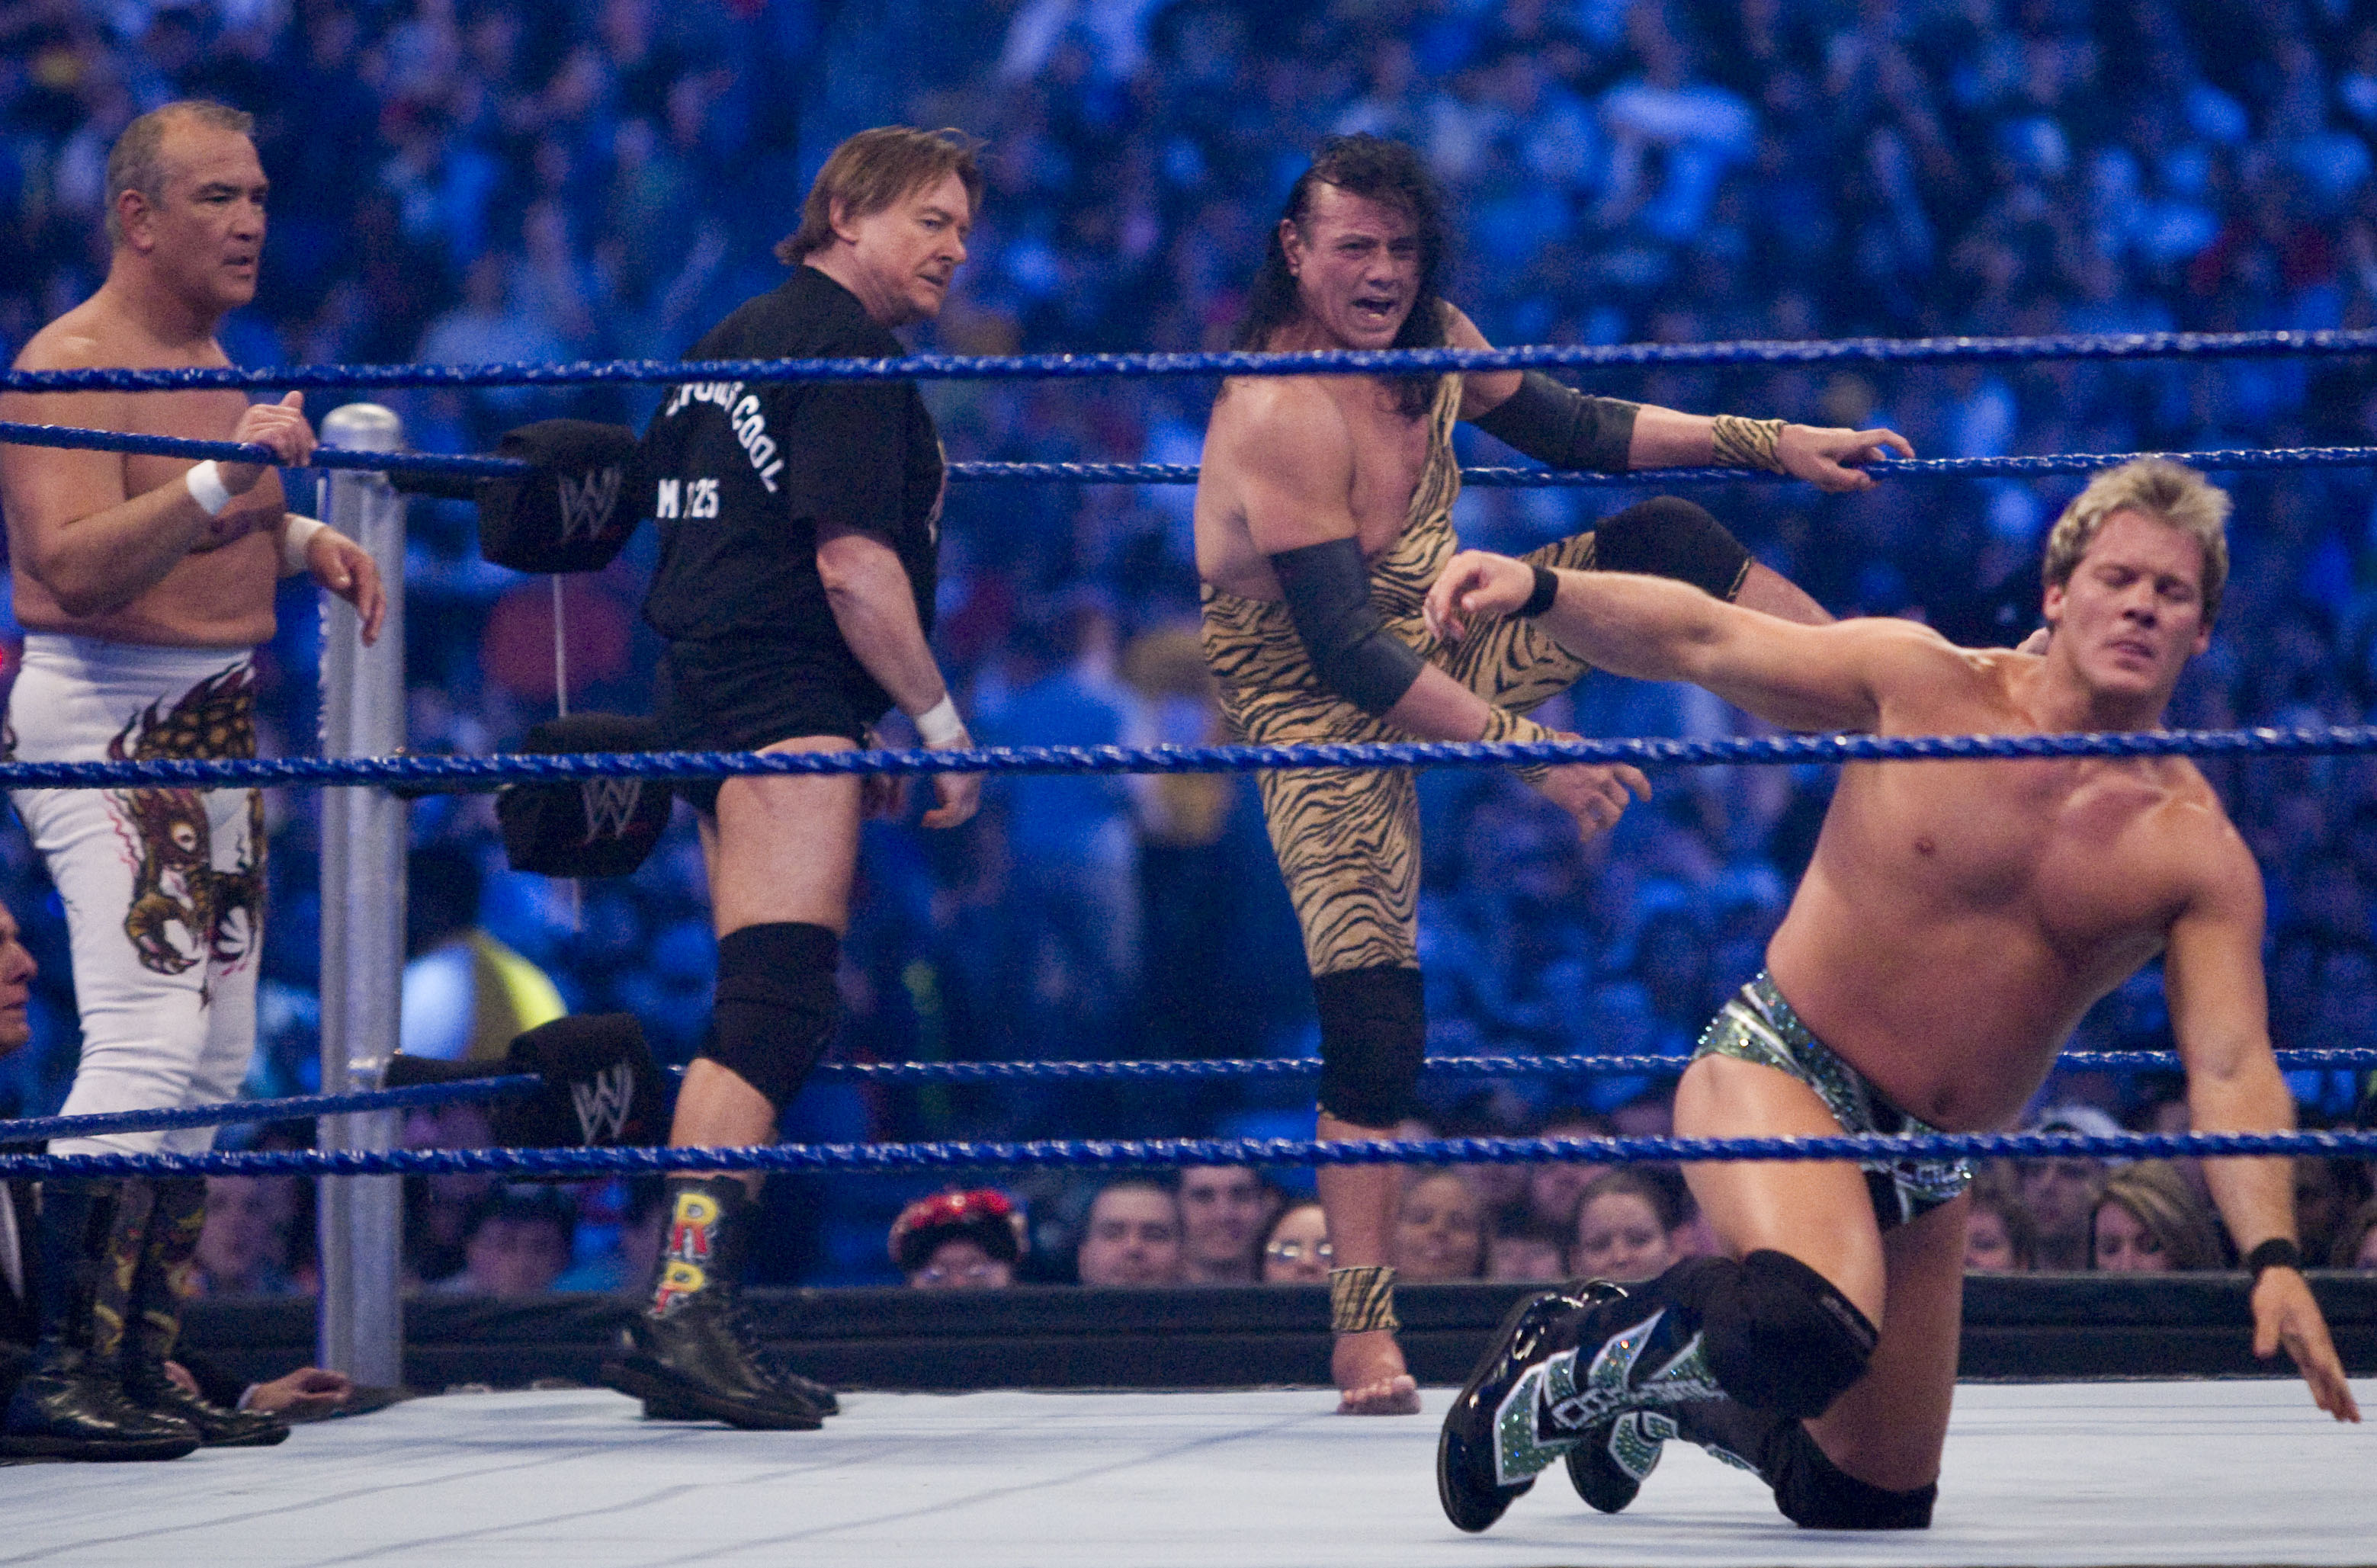 HOUSTON, TX - APRIL 5:  (L-R) Former professional wrestlers Ricky 'The Dragon' Steamboat and 'Rowdy Roddy Piper look on as Jimmy 'Superfly' Snuka steps into the ring to battle WWE Superstar Chris Jericho during  WrestleMania 25 at Reliant Stadium on April